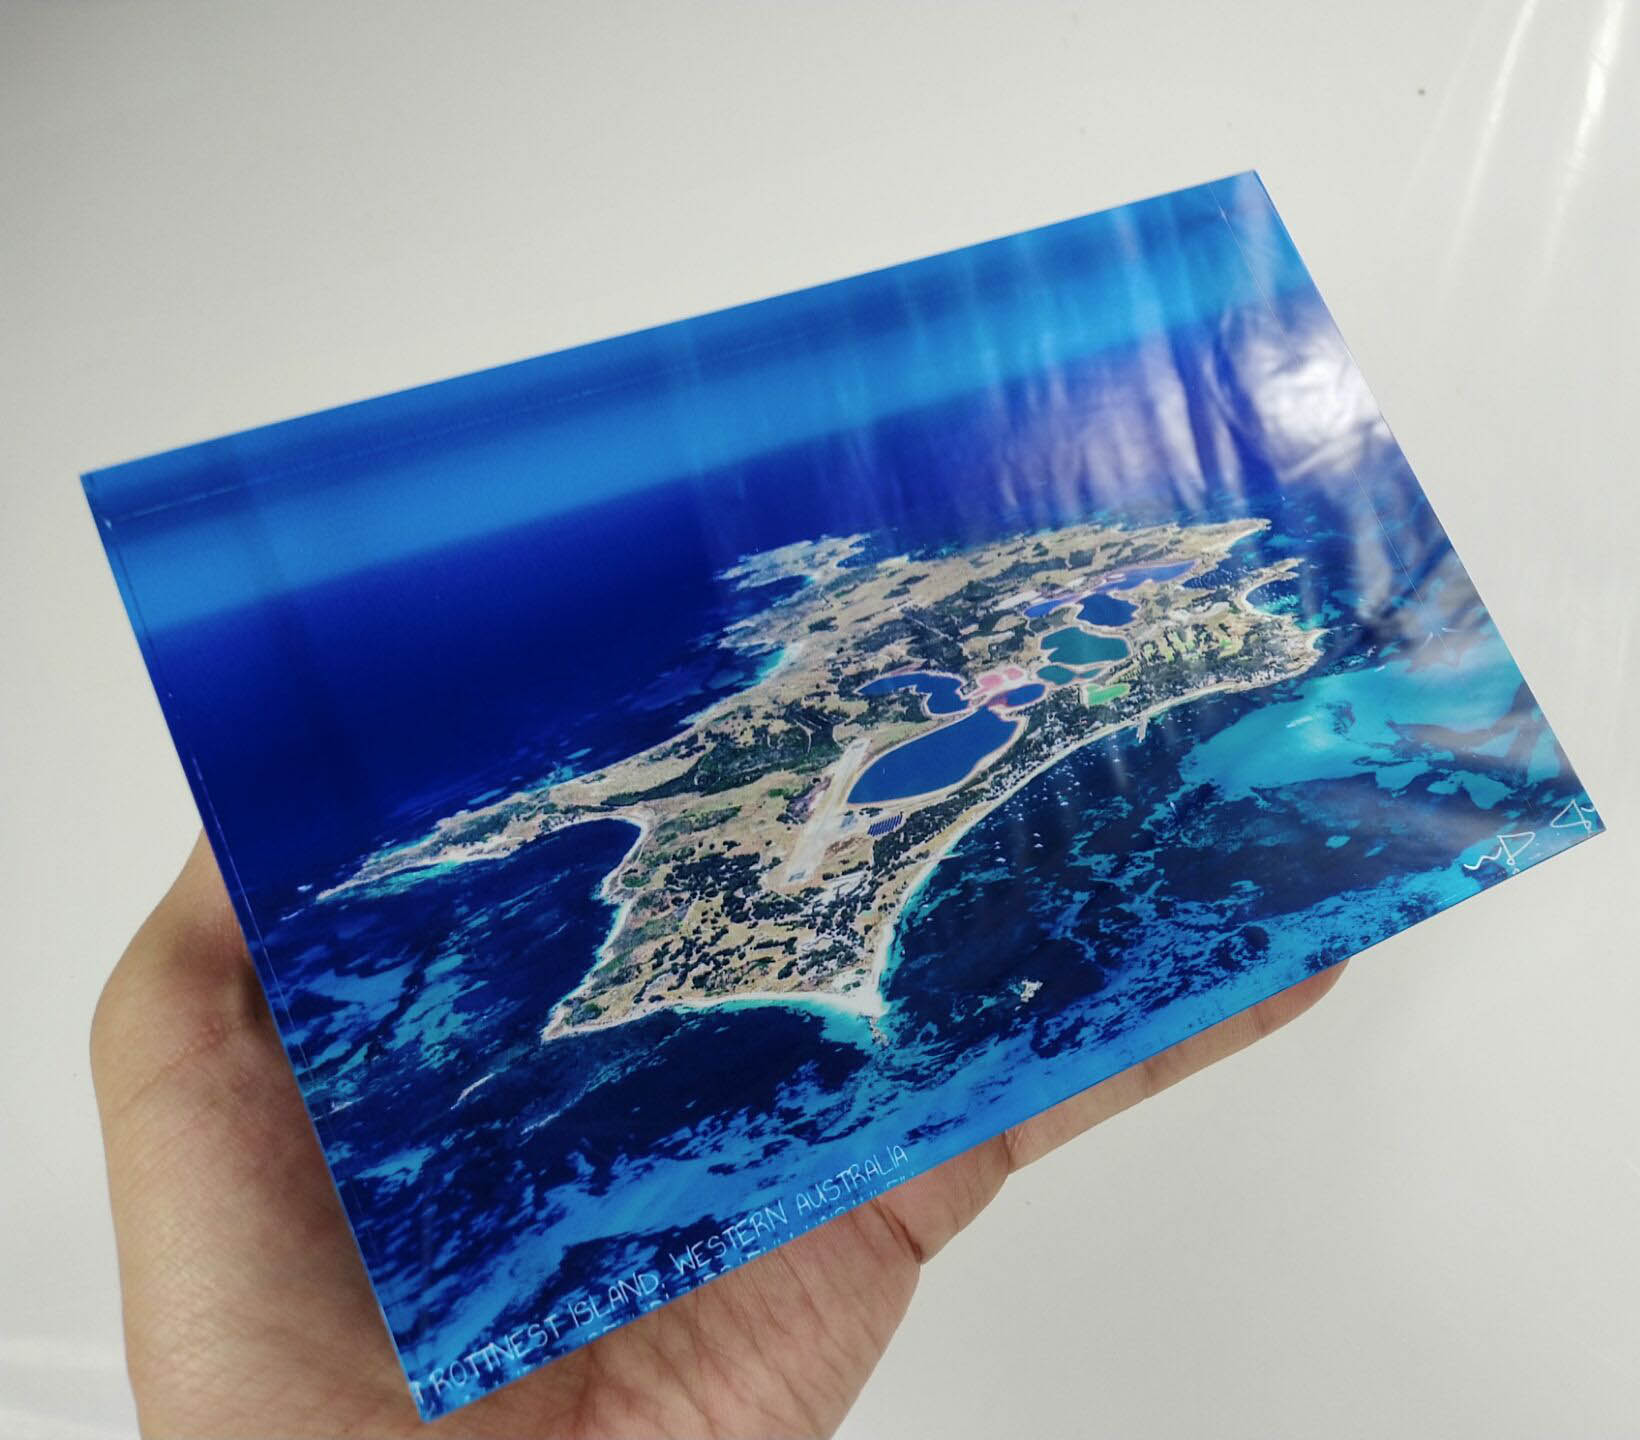 Transparent Solid Acrylic Block Paperweight, Crystal-Clear Top grade acrylic logo block, Plexiglass Solid Block Display